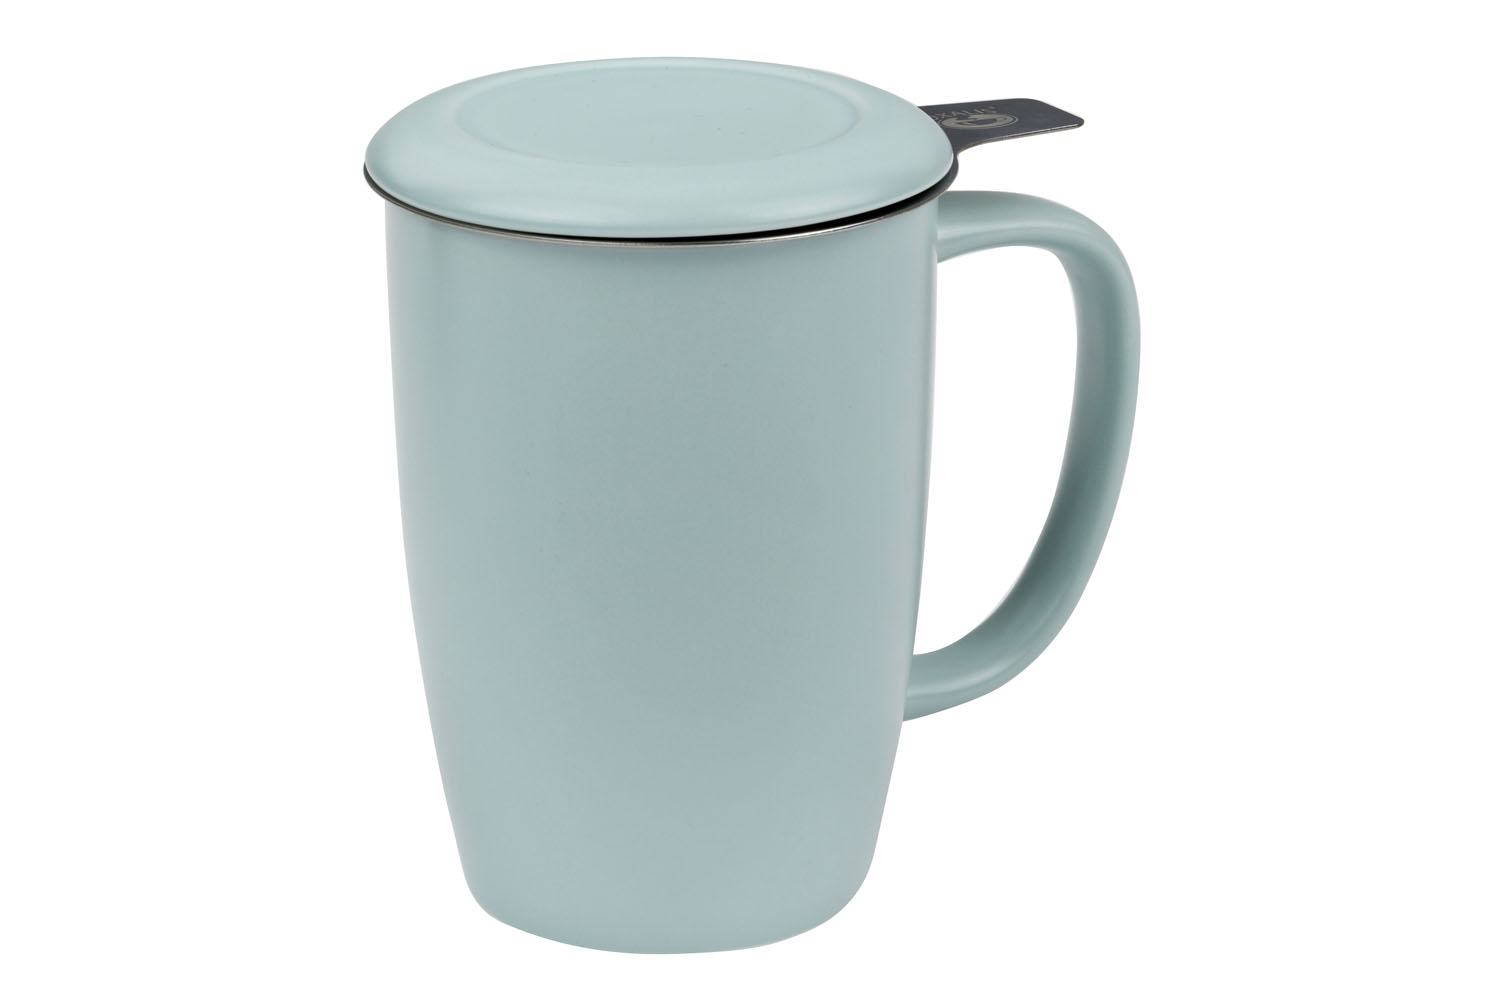 Kai 0.44 l - porcelain mug with a stainless steel strainer and lid